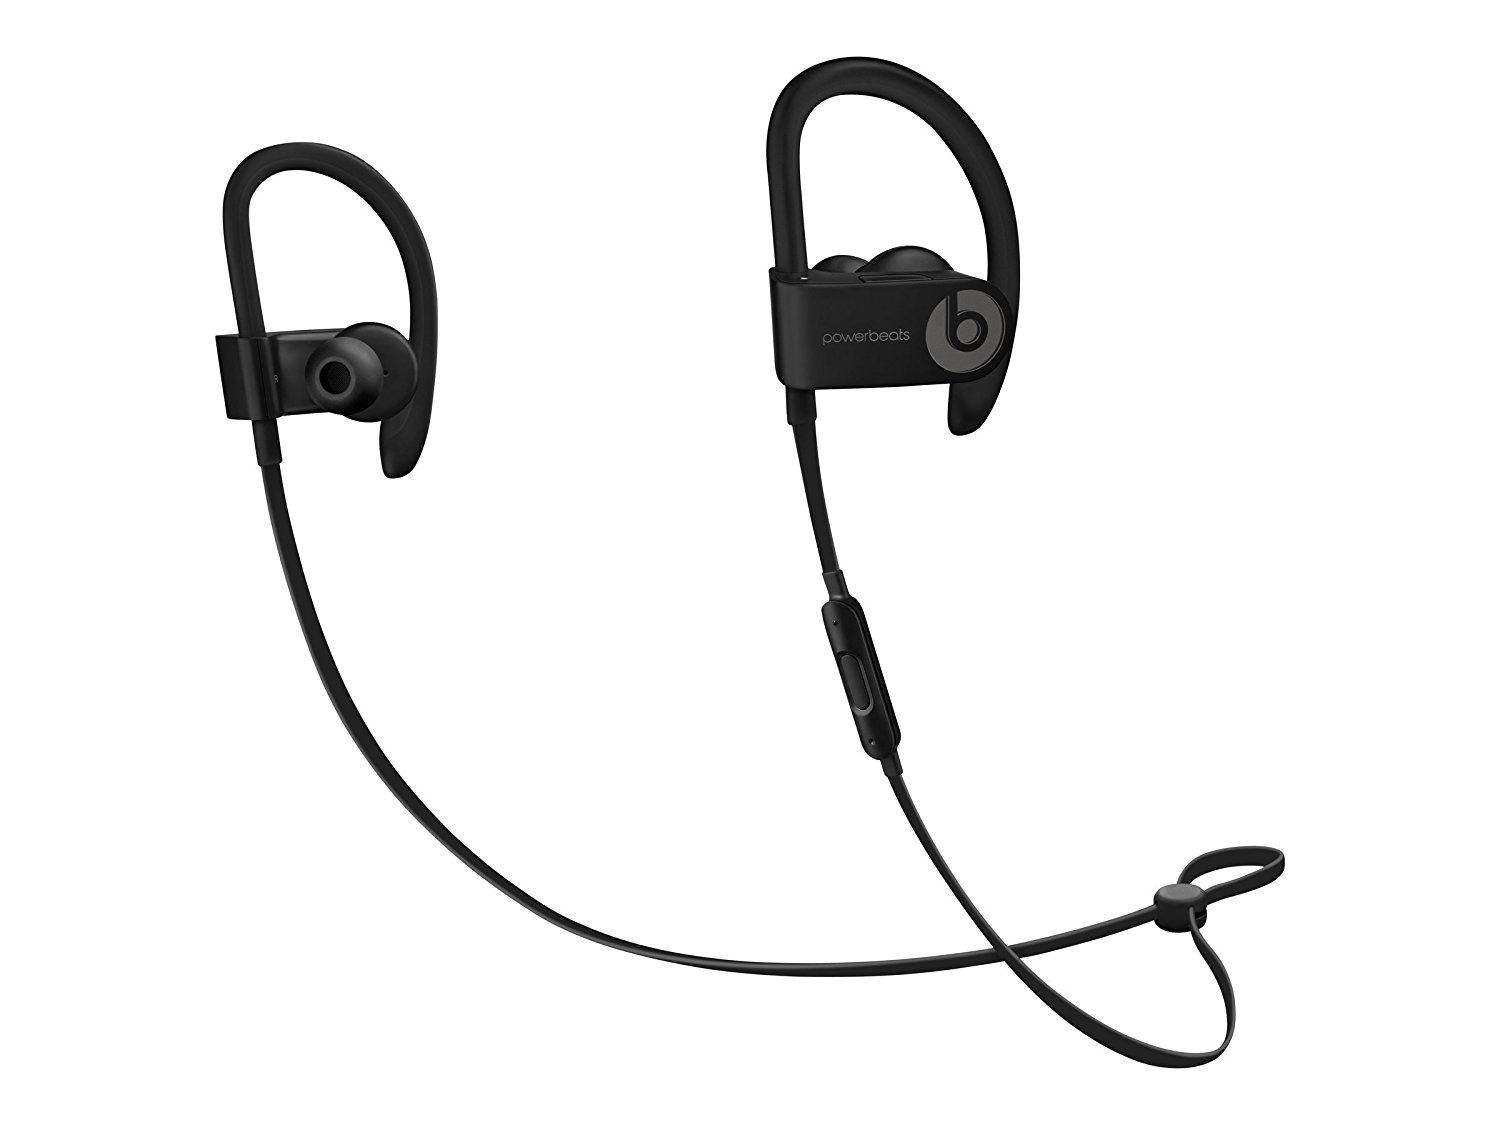 Powerbeats3 Wireless In-Ear Headphones – Black